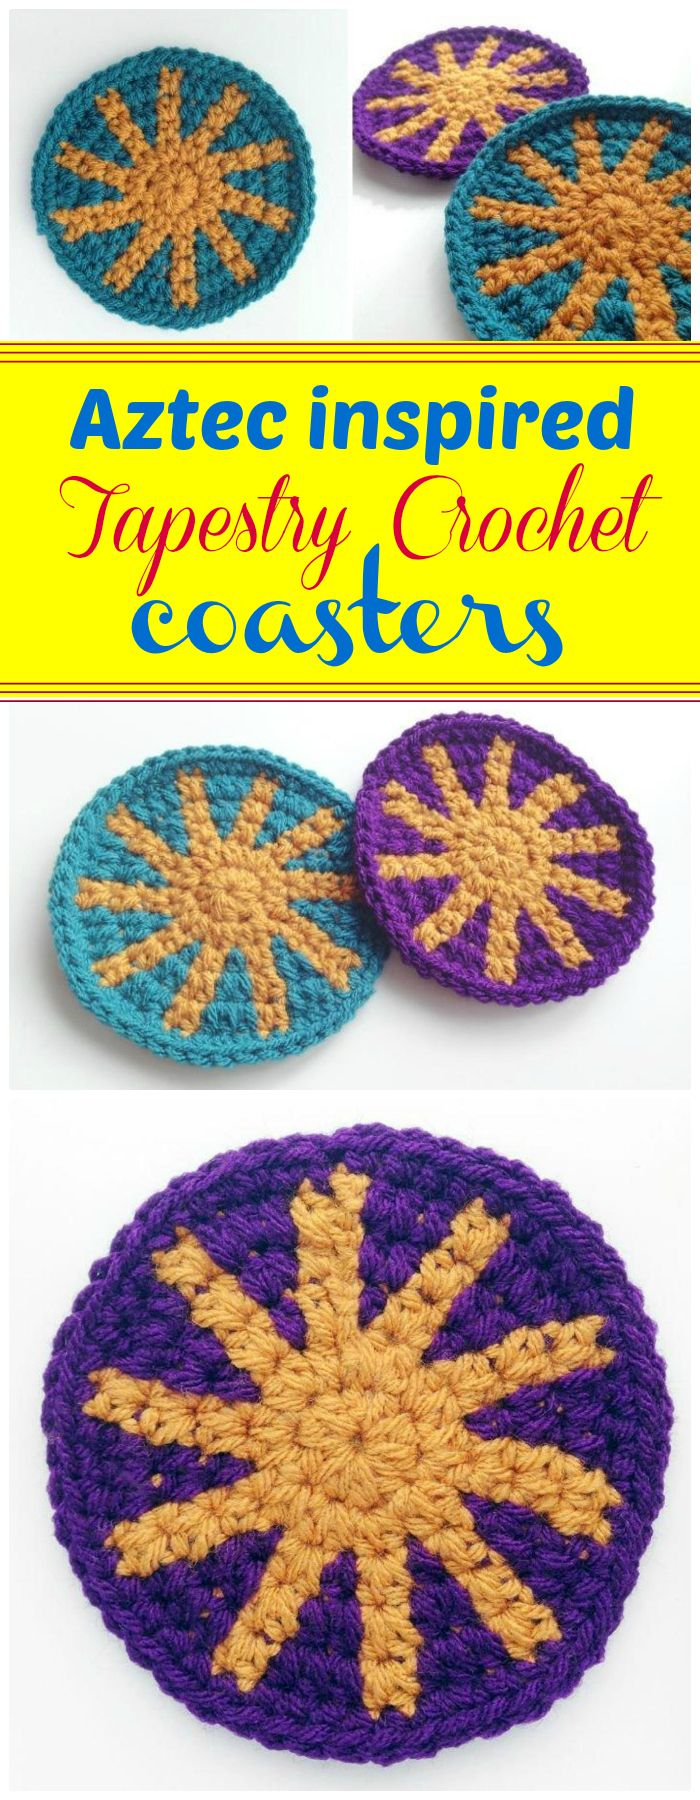 Aztec Inspired Tapestry Crochet Coasters - free crochet coaster patterns | Free Crochet Coaster Patterns